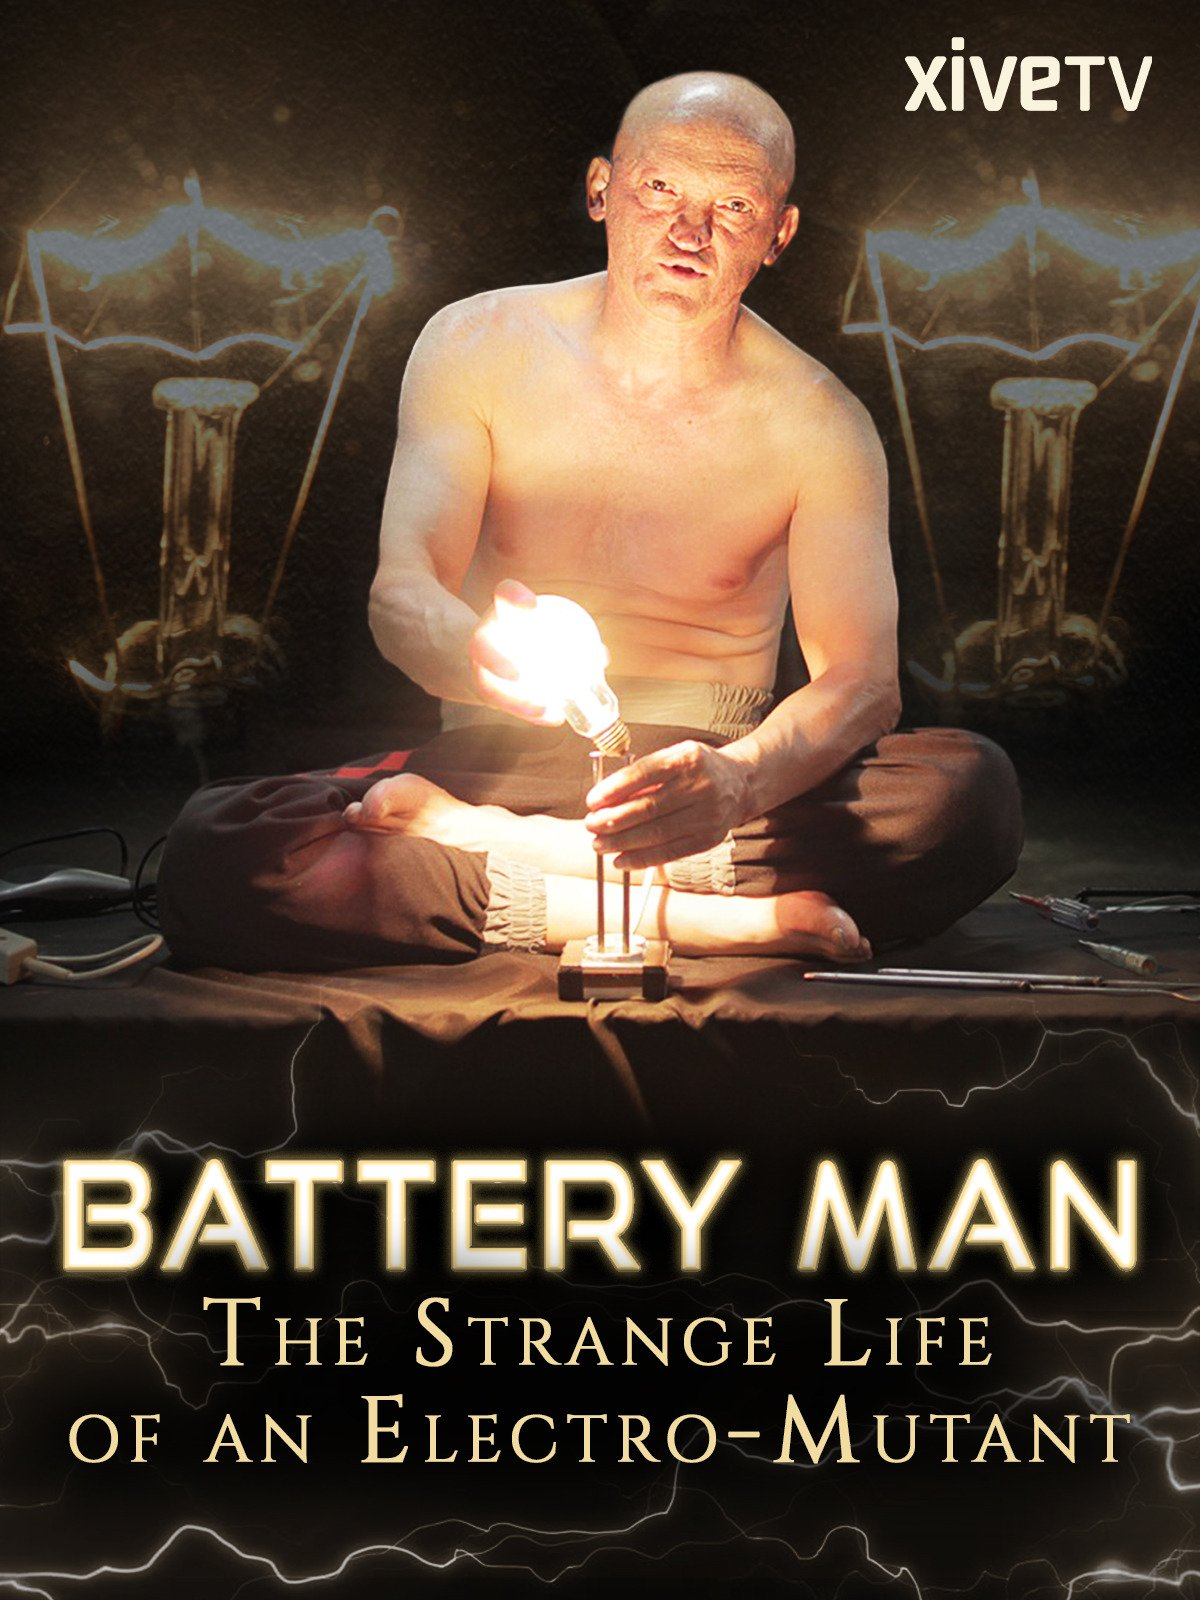 Battery Man: The Strange Life of an Electro-Mutant